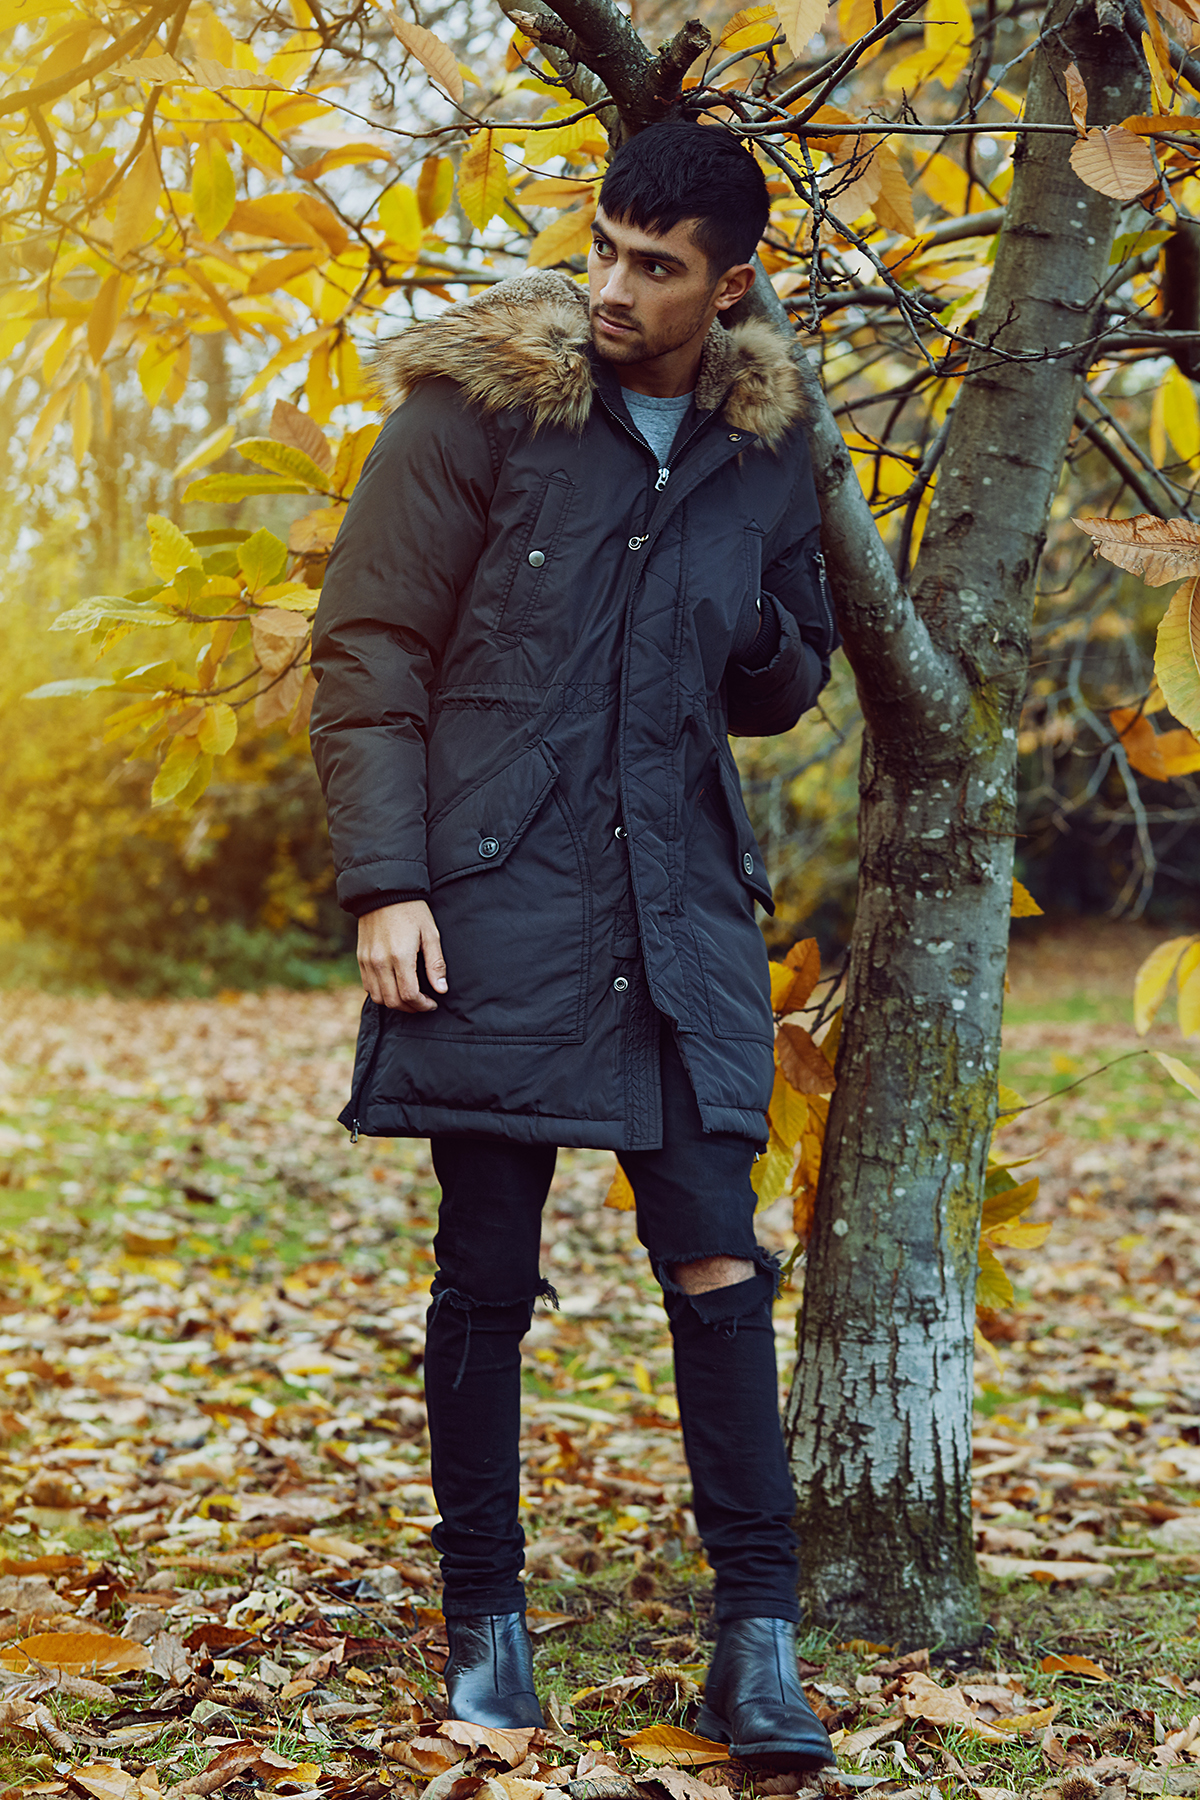 joey-london_autumnal-shoot_7235_lr